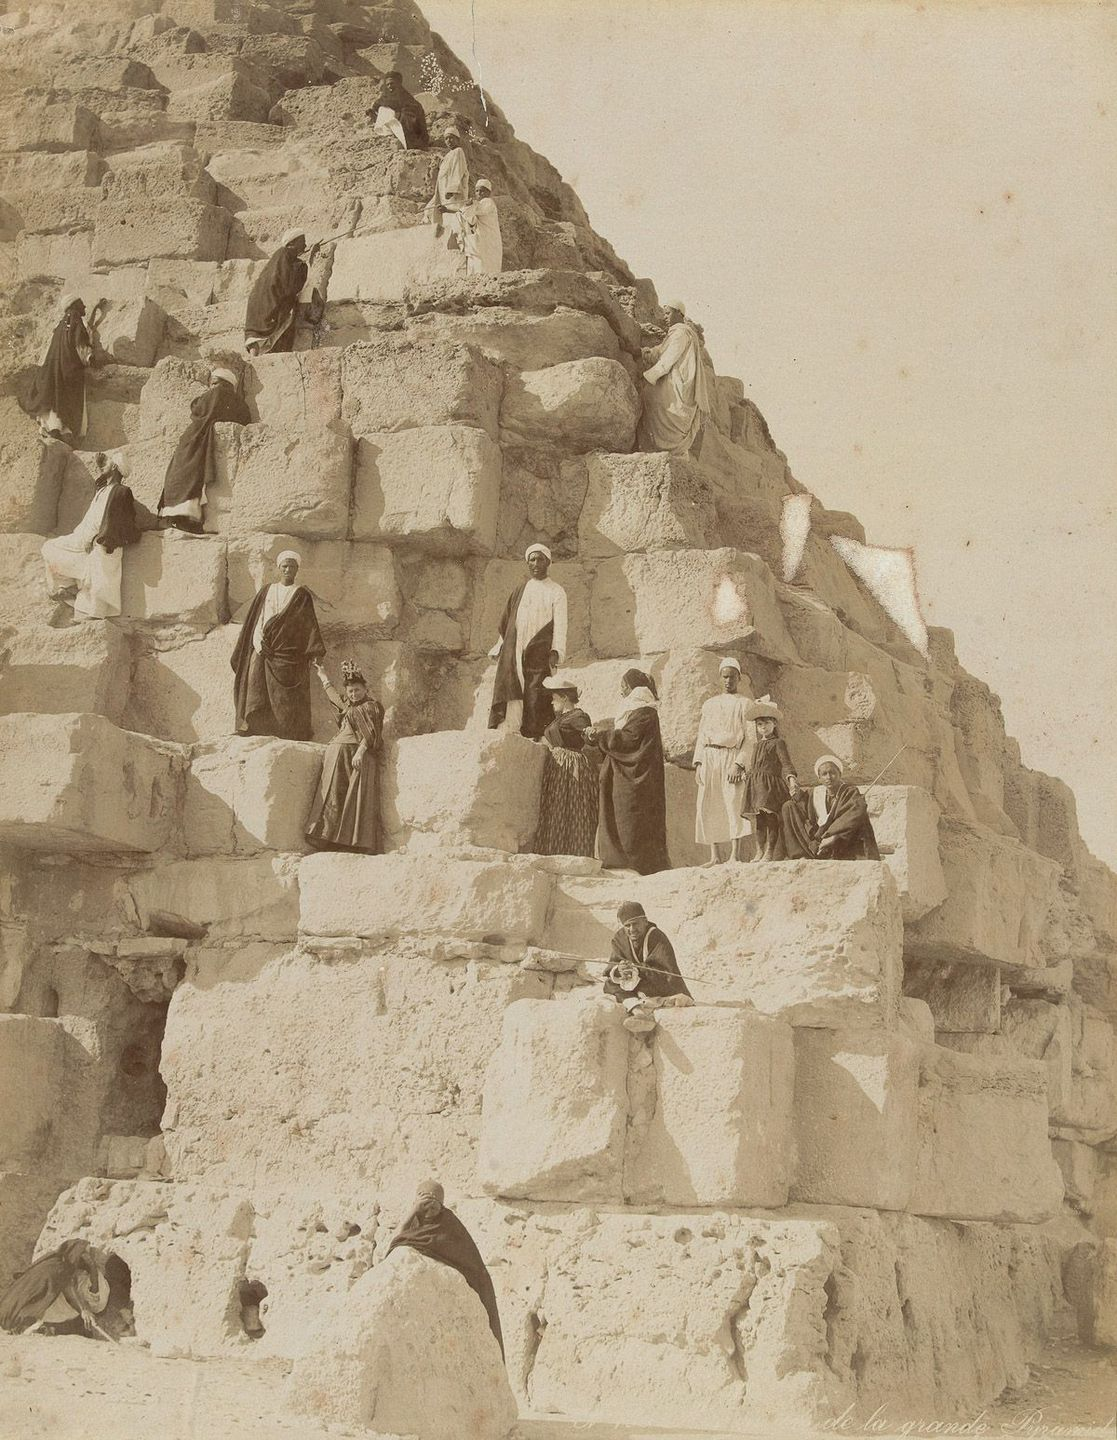 European tourists and local guides climb one of the pyramids at Giza.